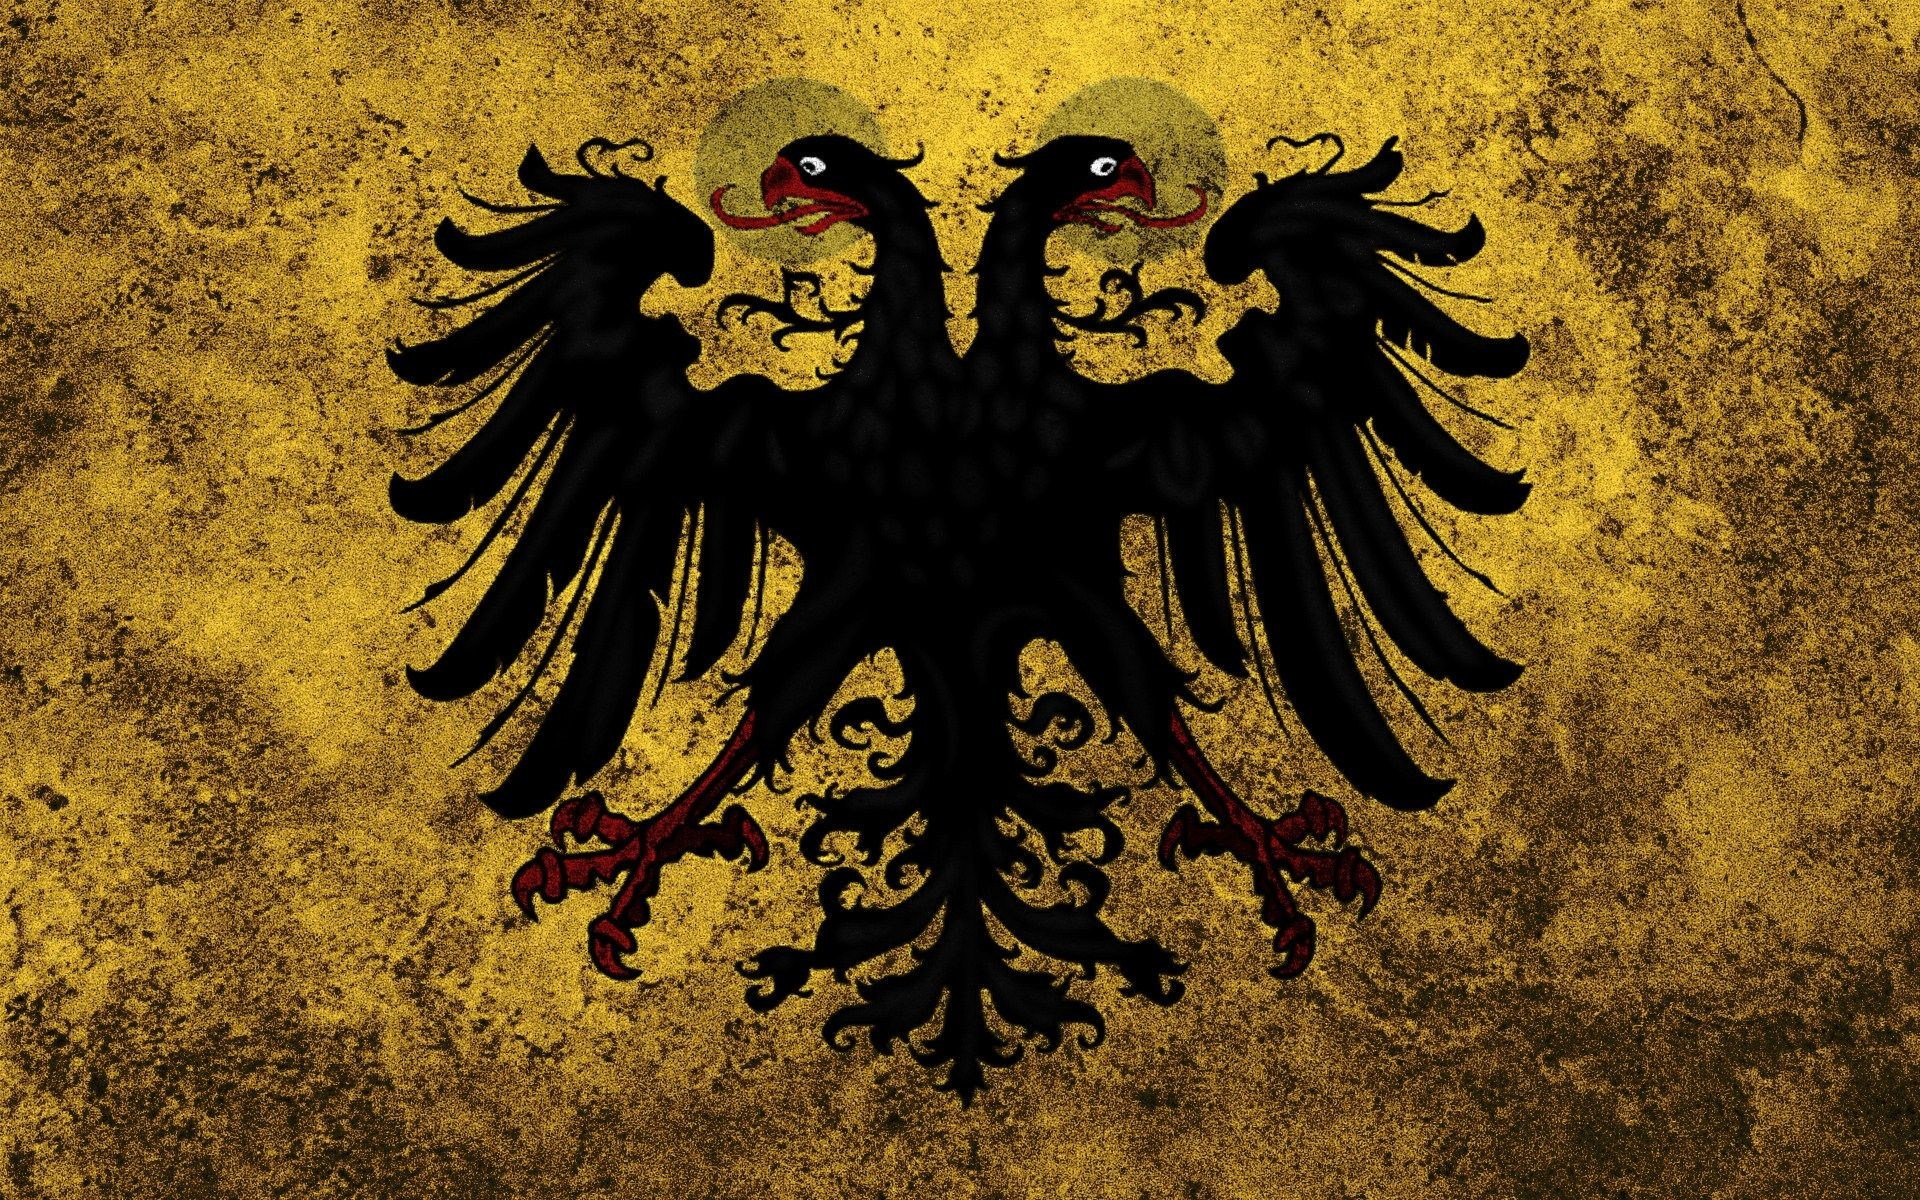 Grunge russian austria eagles flags two headed eagles holy roman .